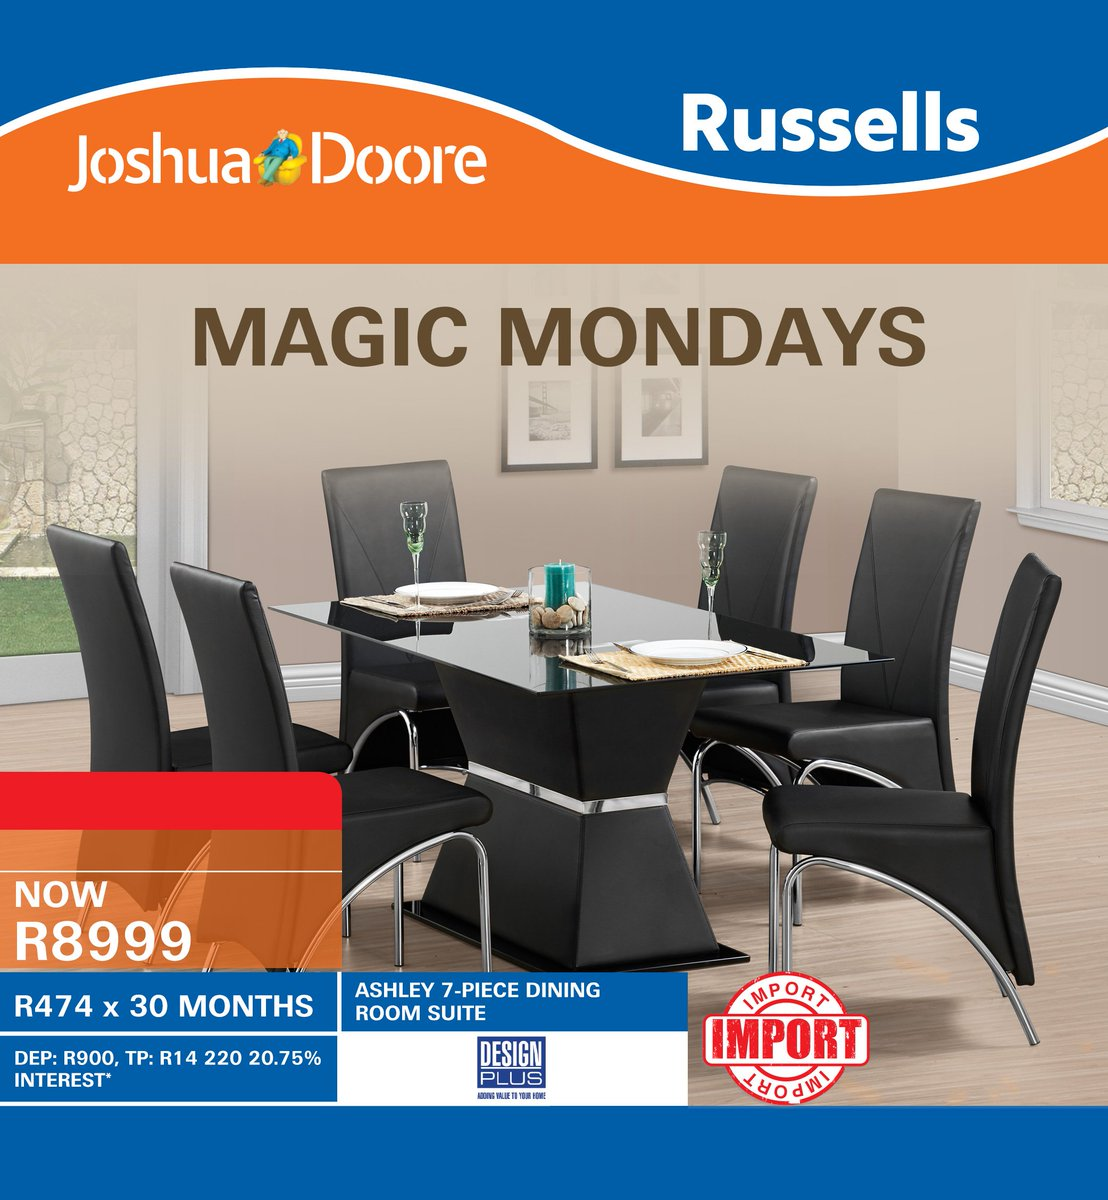 Joshua Doore On Twitter Dine In Style With This Stunning Ashley 7 Rh Com Murder Furniture South Africa